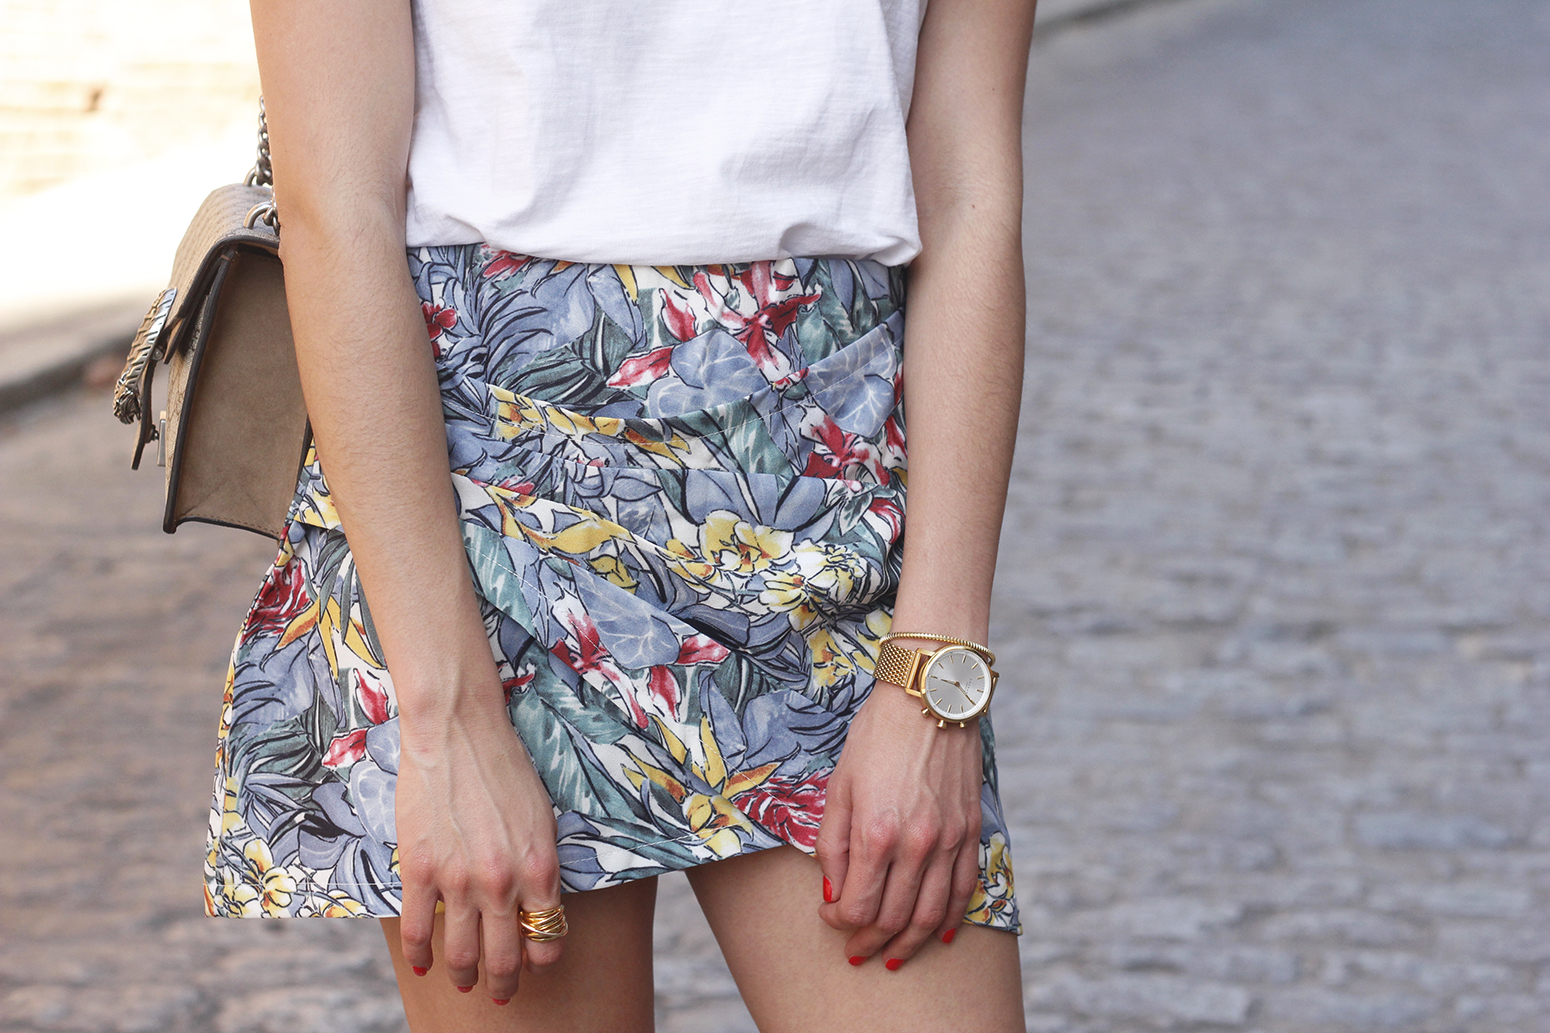 Tropical Skirt gucci bag superga outfit style summer14